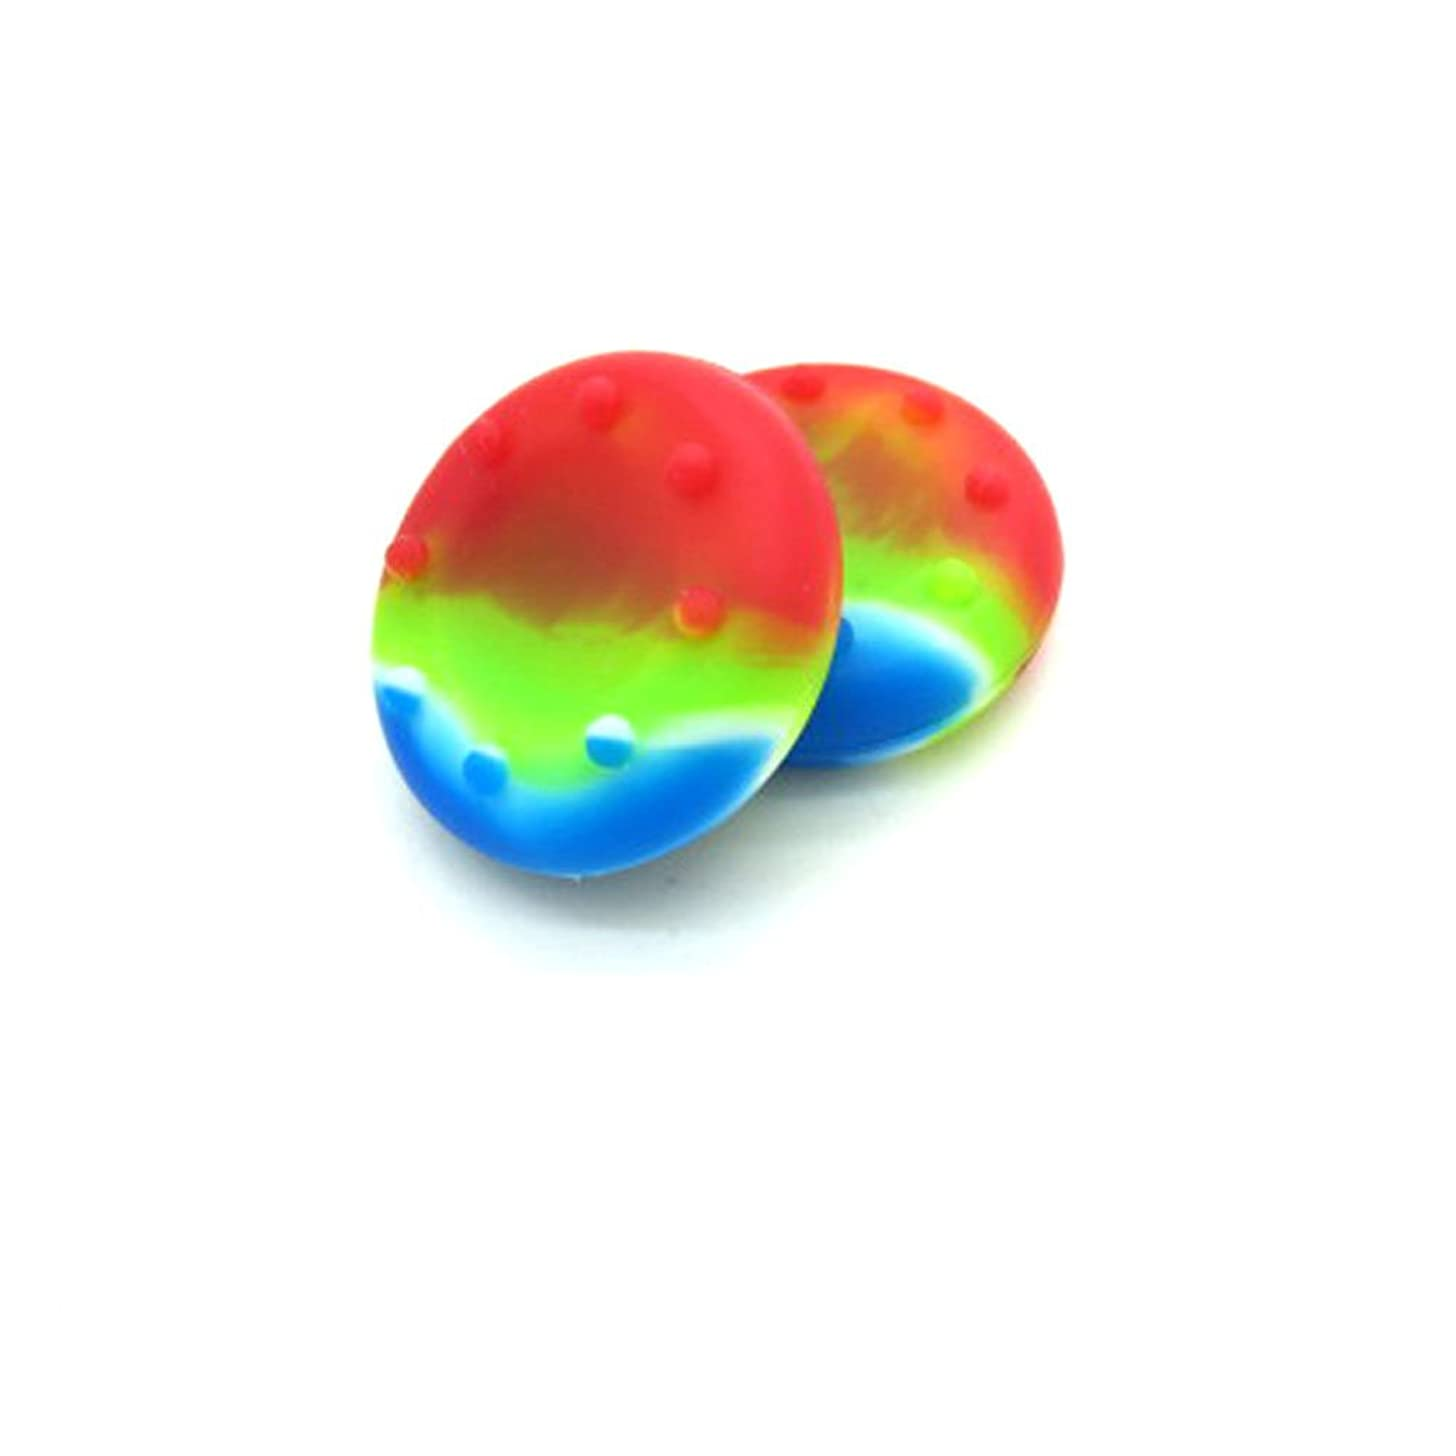 2 x Rainbow Controller Analog Thumbstick Grip Cover Caps For Sony PS3 PS4 XBOX ONE 360 Wii U